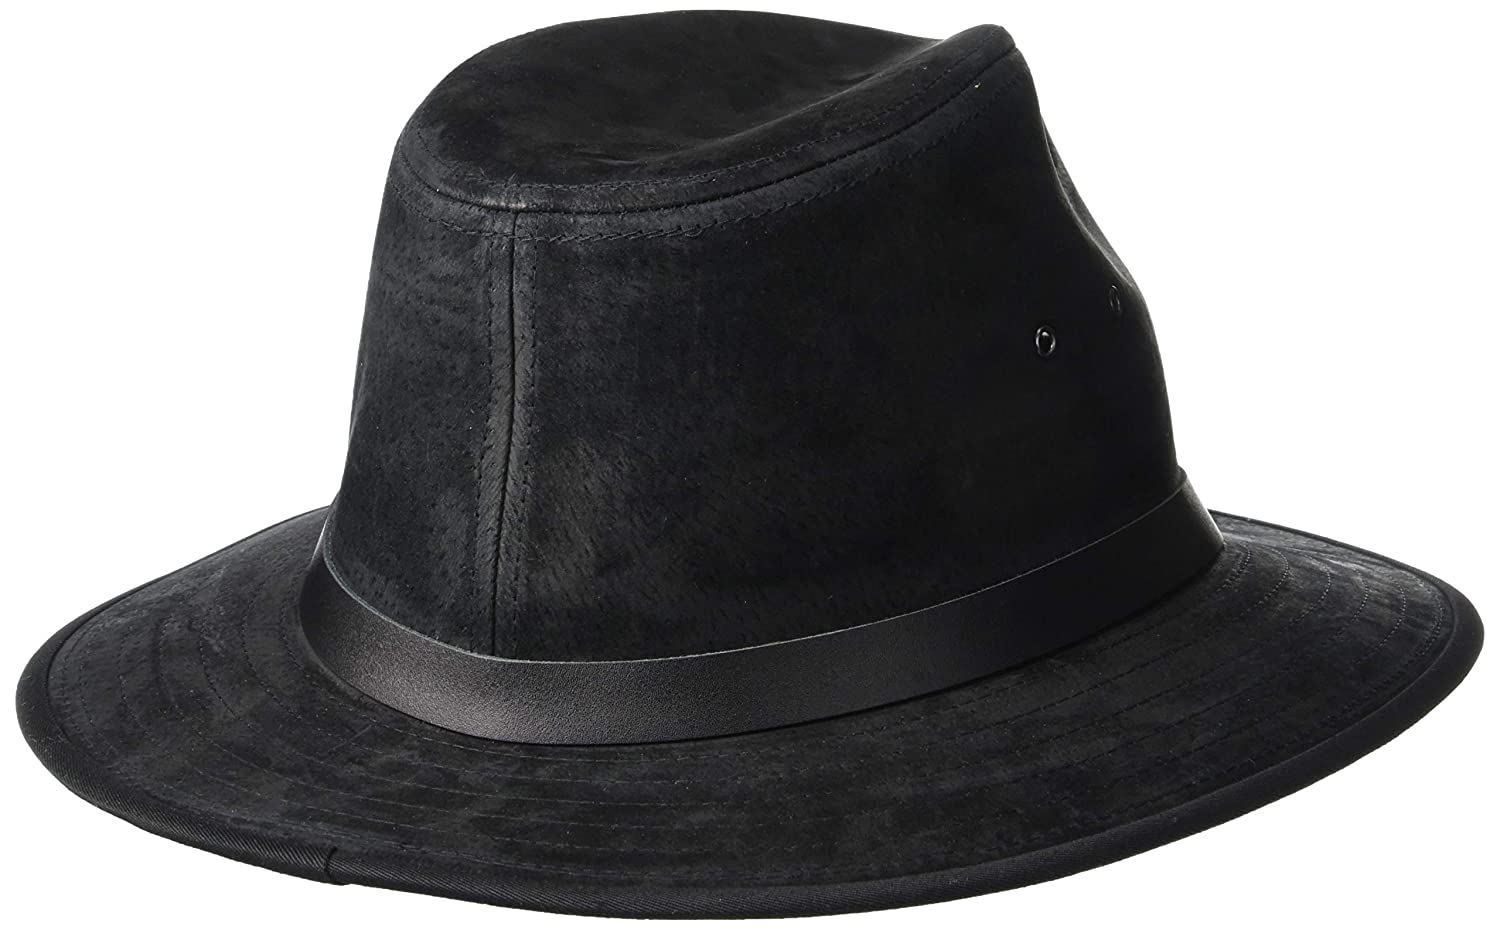 Henschel Hats Safari GENUINE LEATHER Lined Fedora Hat (Small 6fc26b21aab